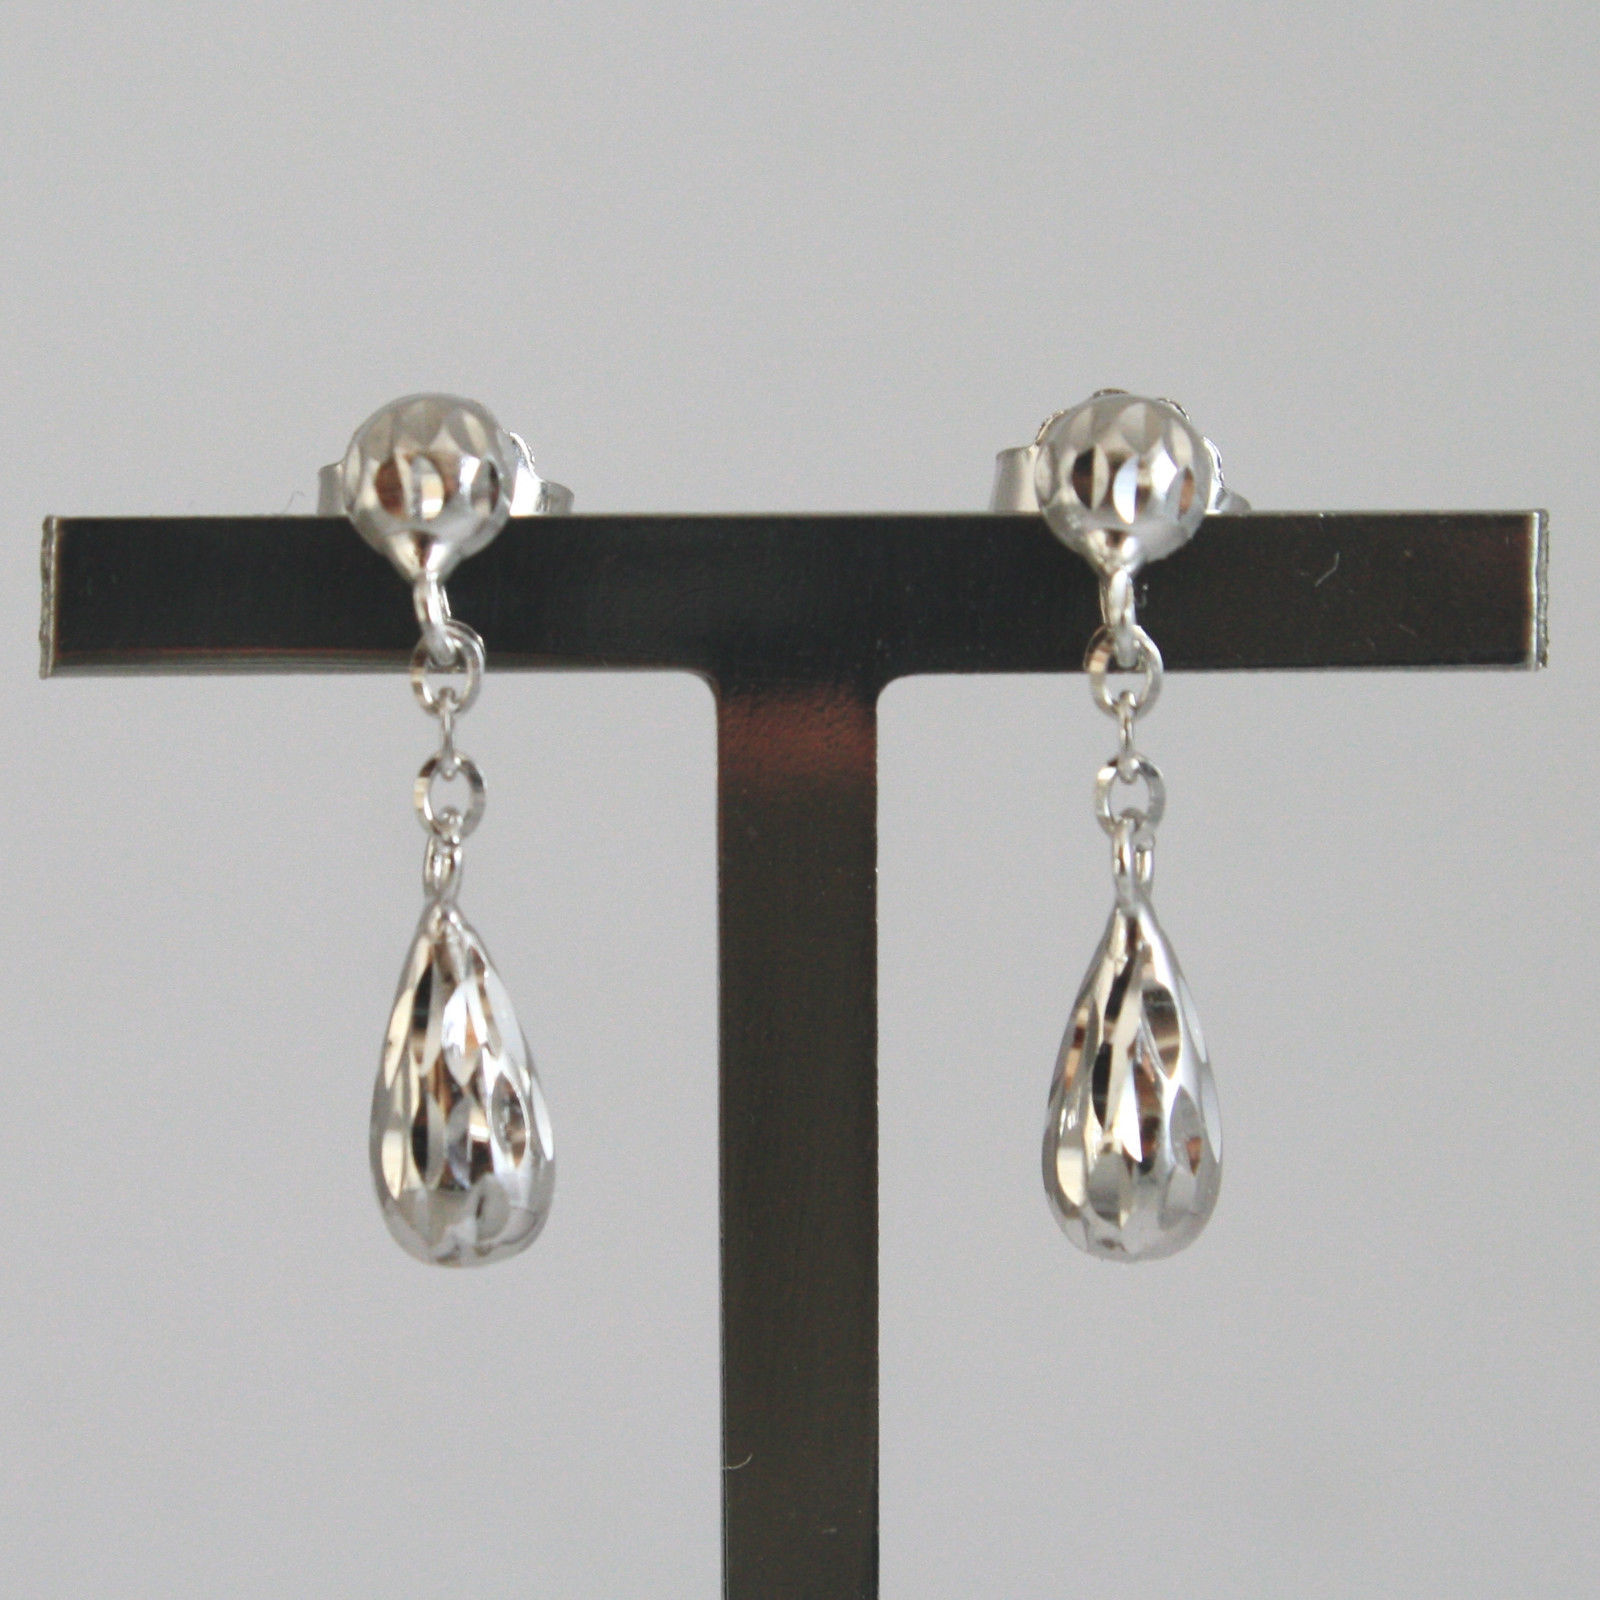 SOLID 18K WHITE GOLD EARRINGS, WITH HAMMERED DROPS , LENGTH 0,83 IN